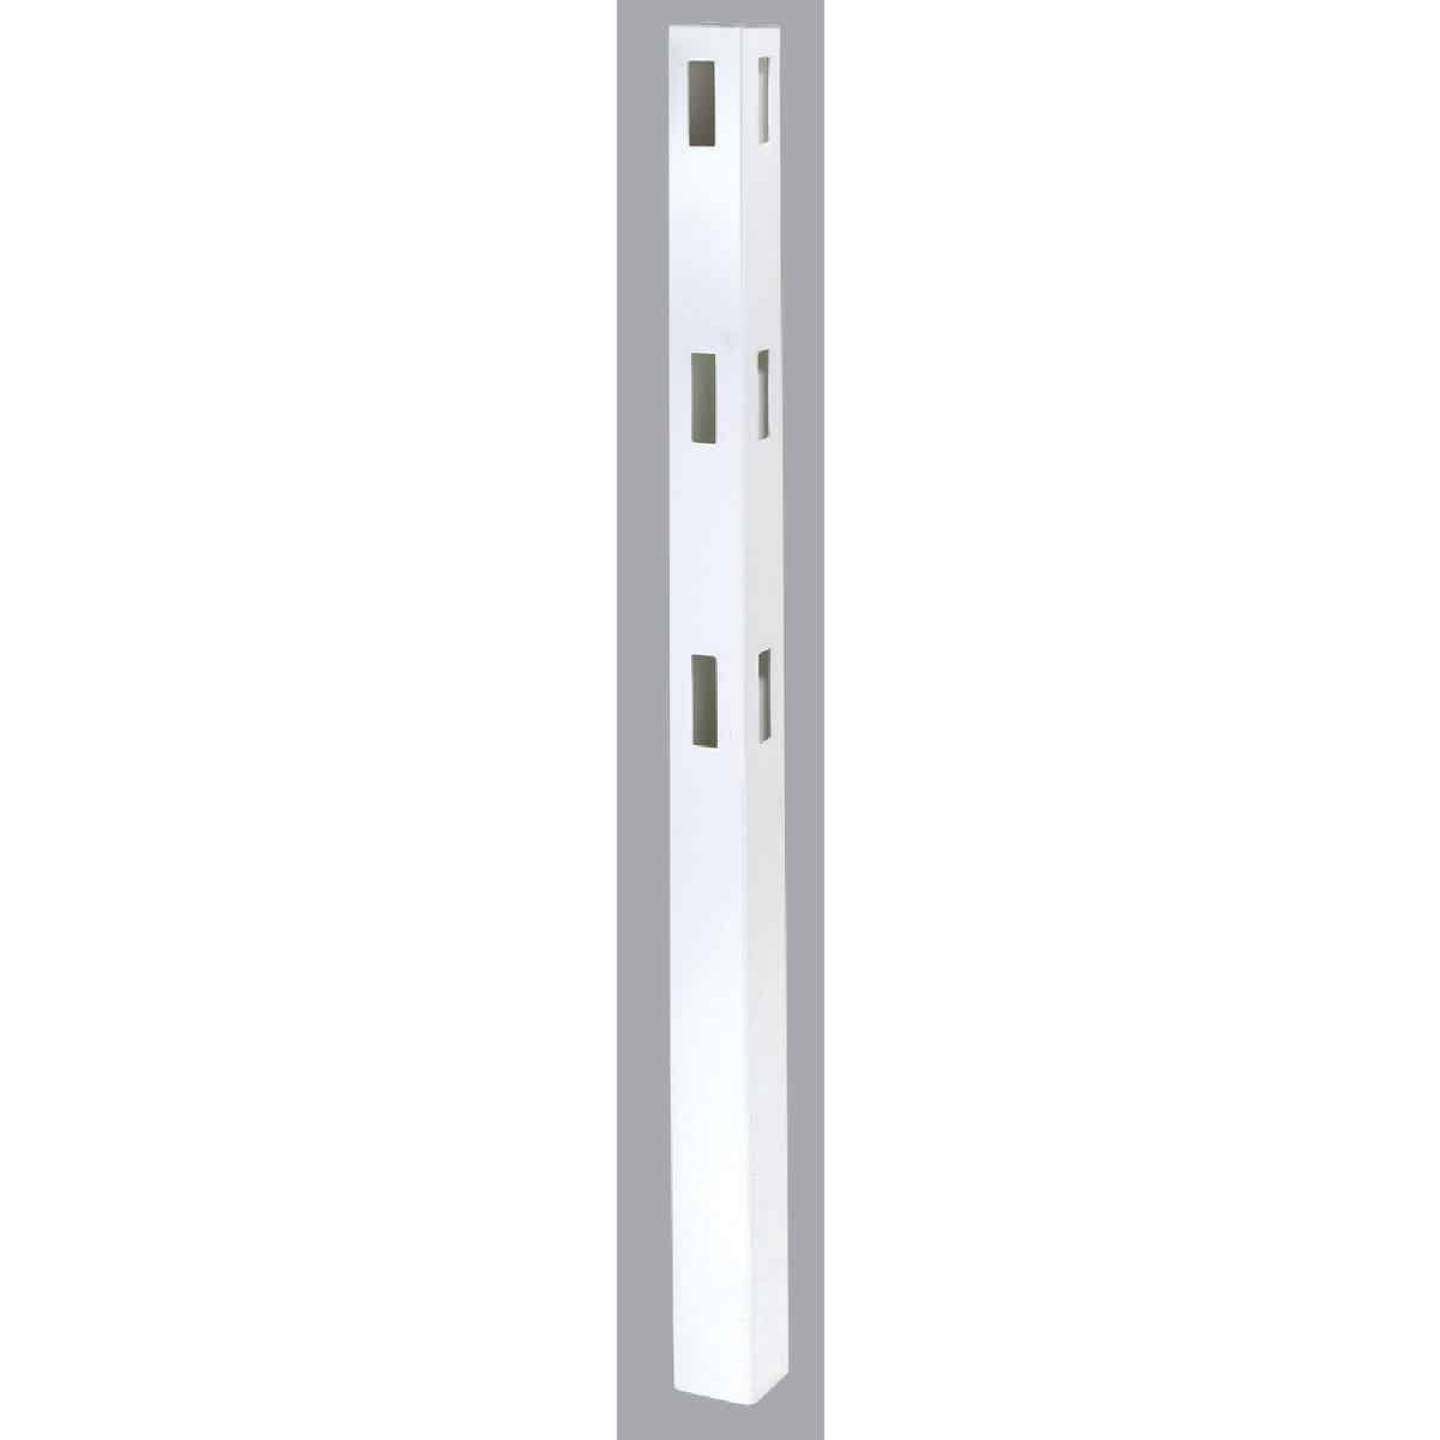 Outdoor Essentials 5 In. x 5 In. x 84 In. White Corner 3-Rail Fence Vinyl Post Image 1